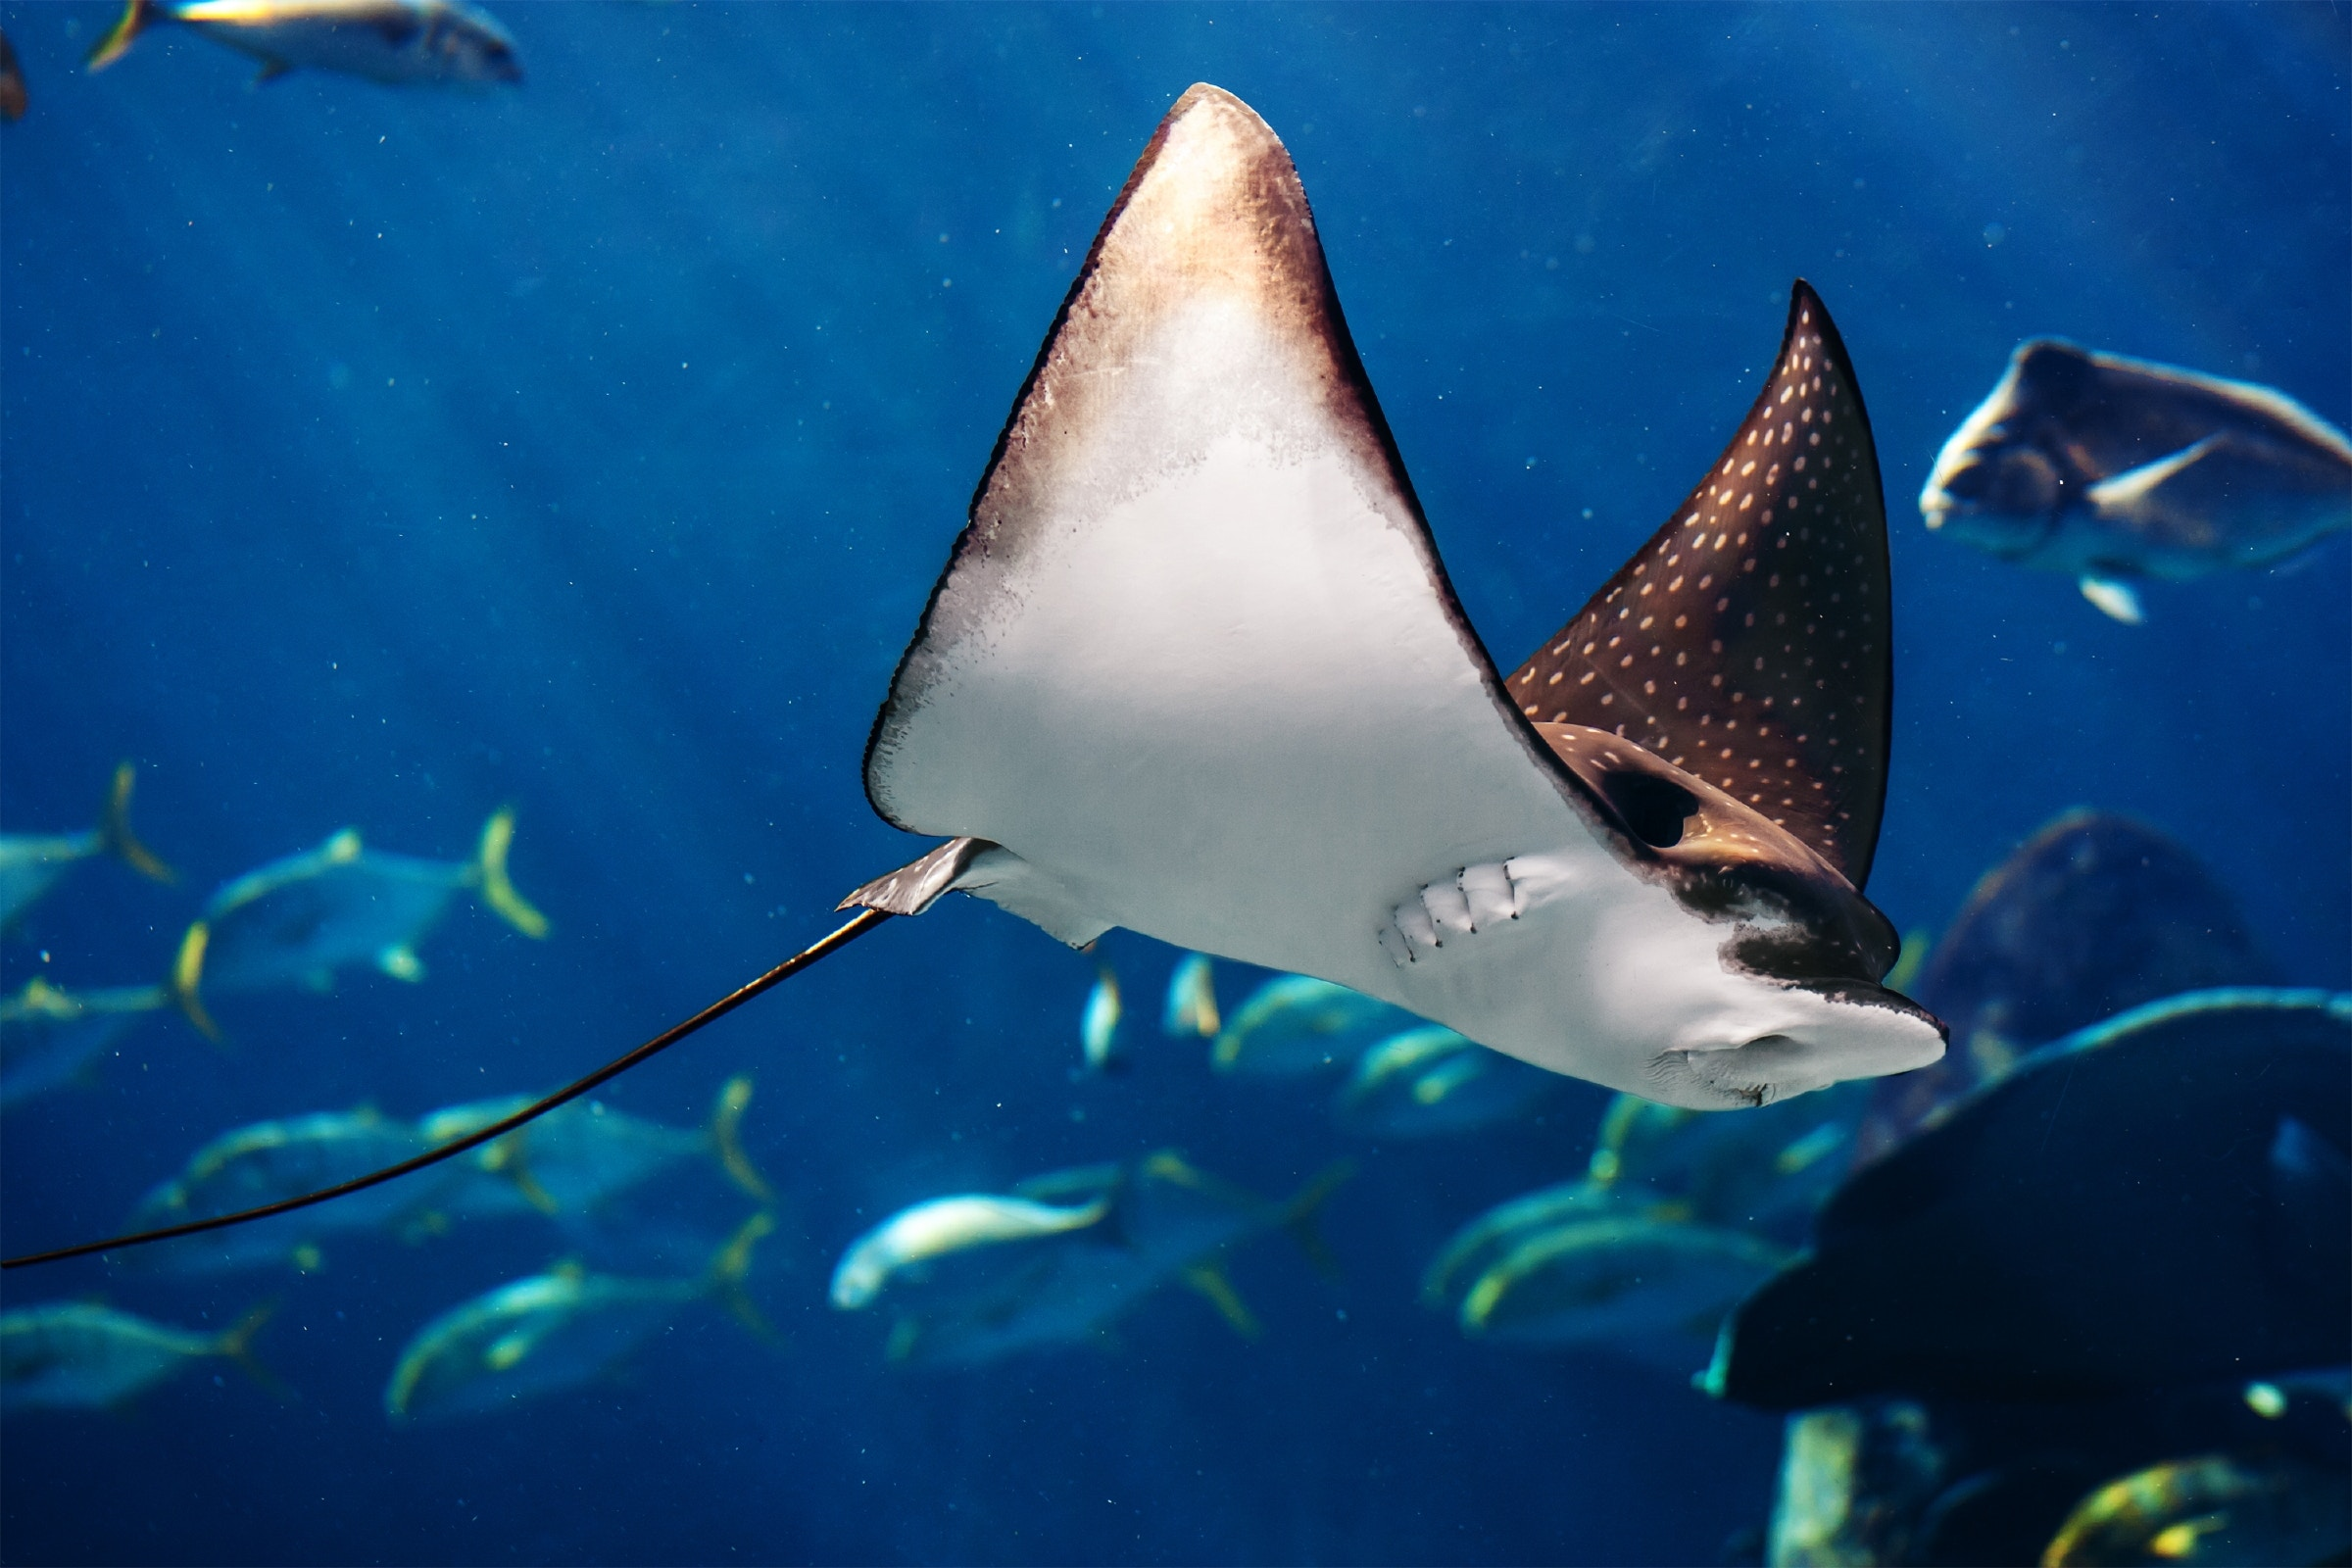 Manta ray floating underwater among other fish.